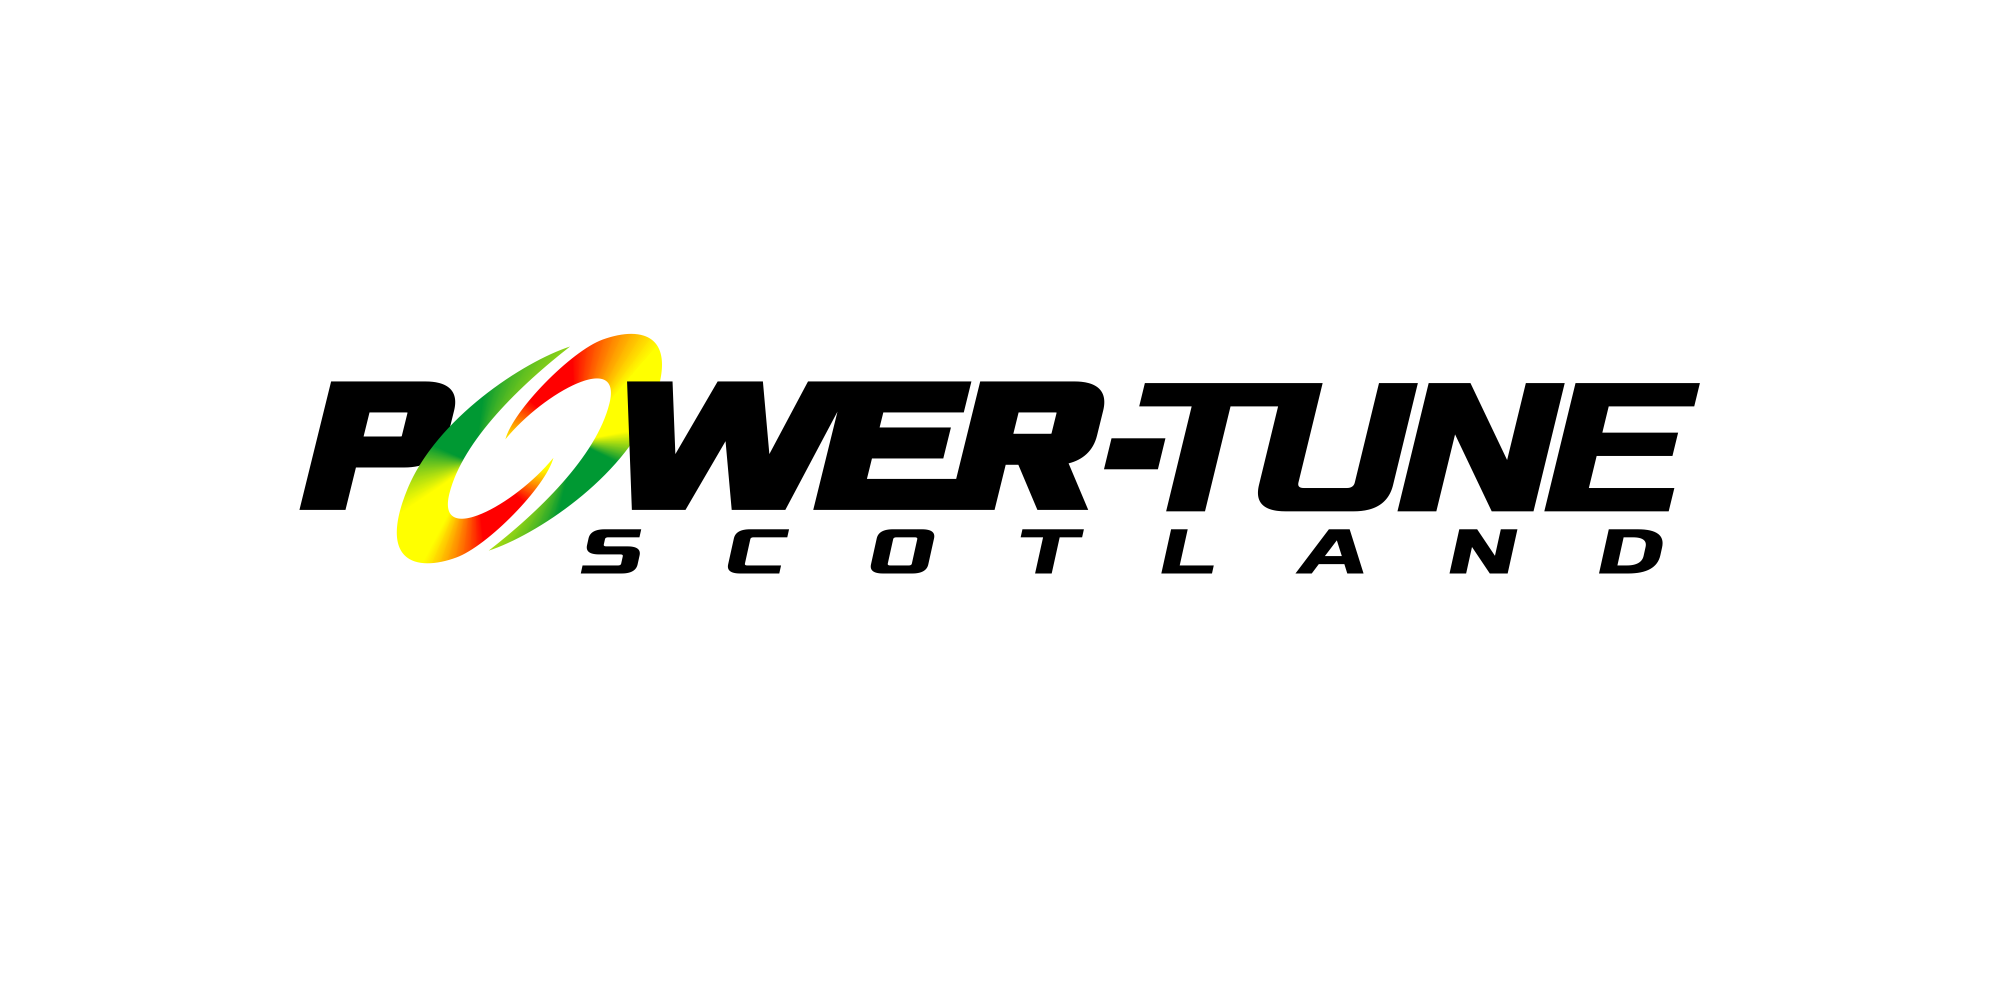 New logo for Power-tune